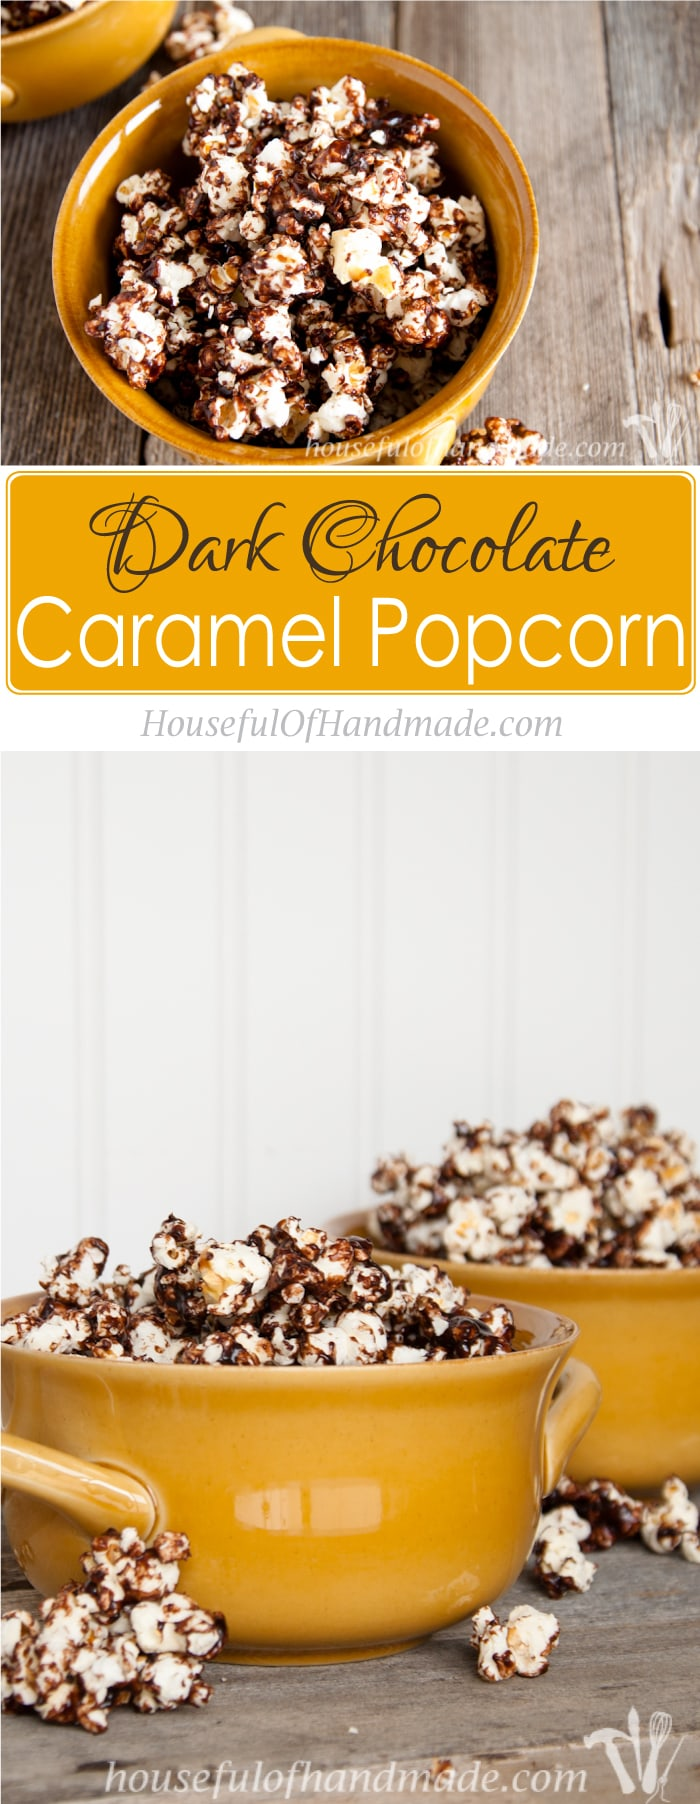 how to make chocolate caramel popcorn